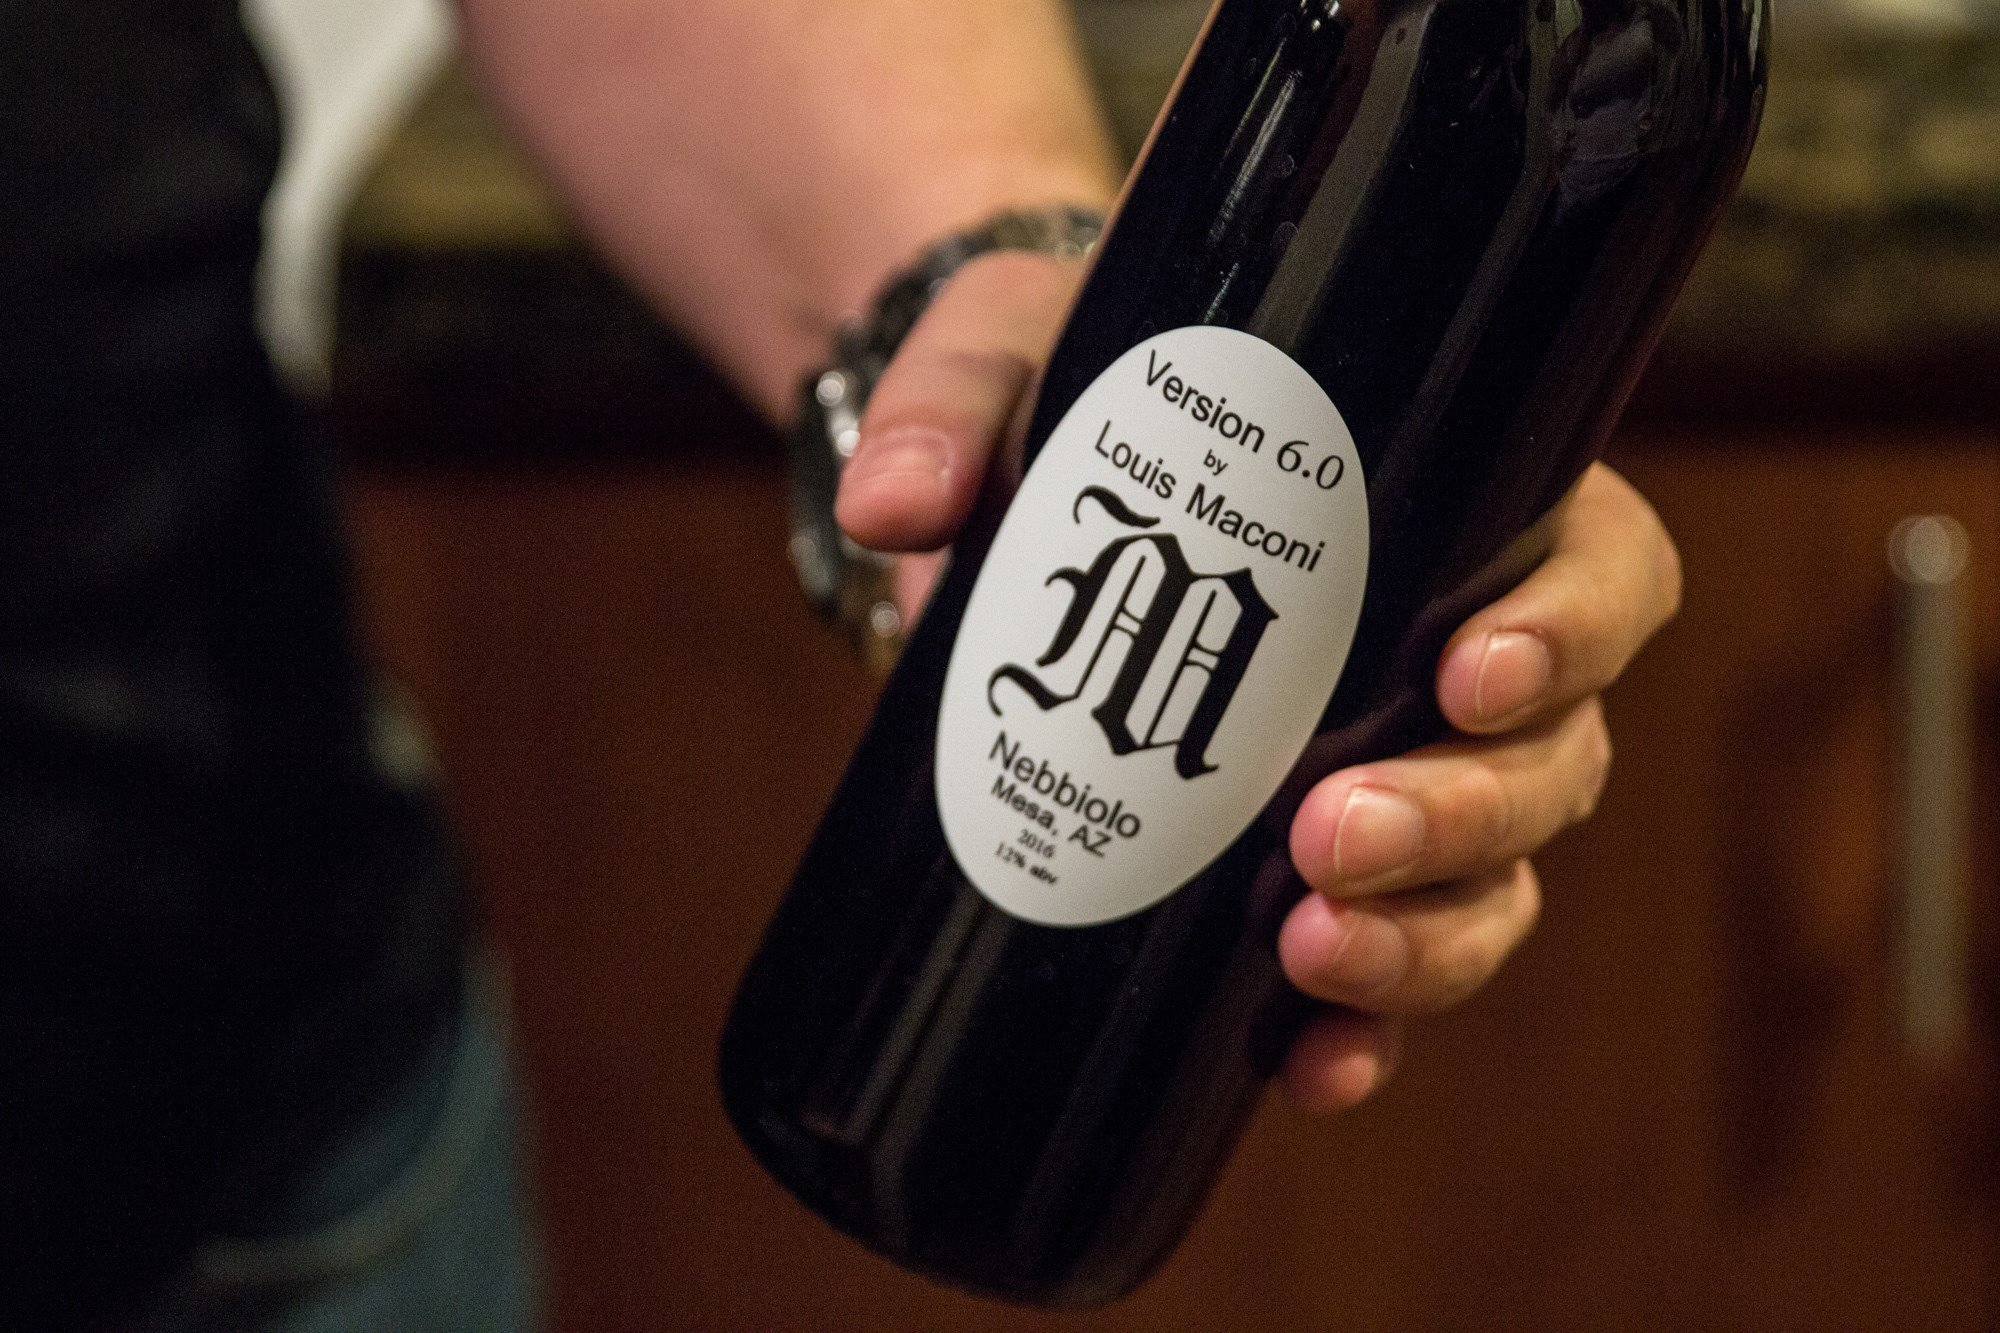 Louis Maconi has personal labels for his homemade wine. He believes his homemade product is better than some commercial wines. (Source: Jenna Miller/Cronkite News)